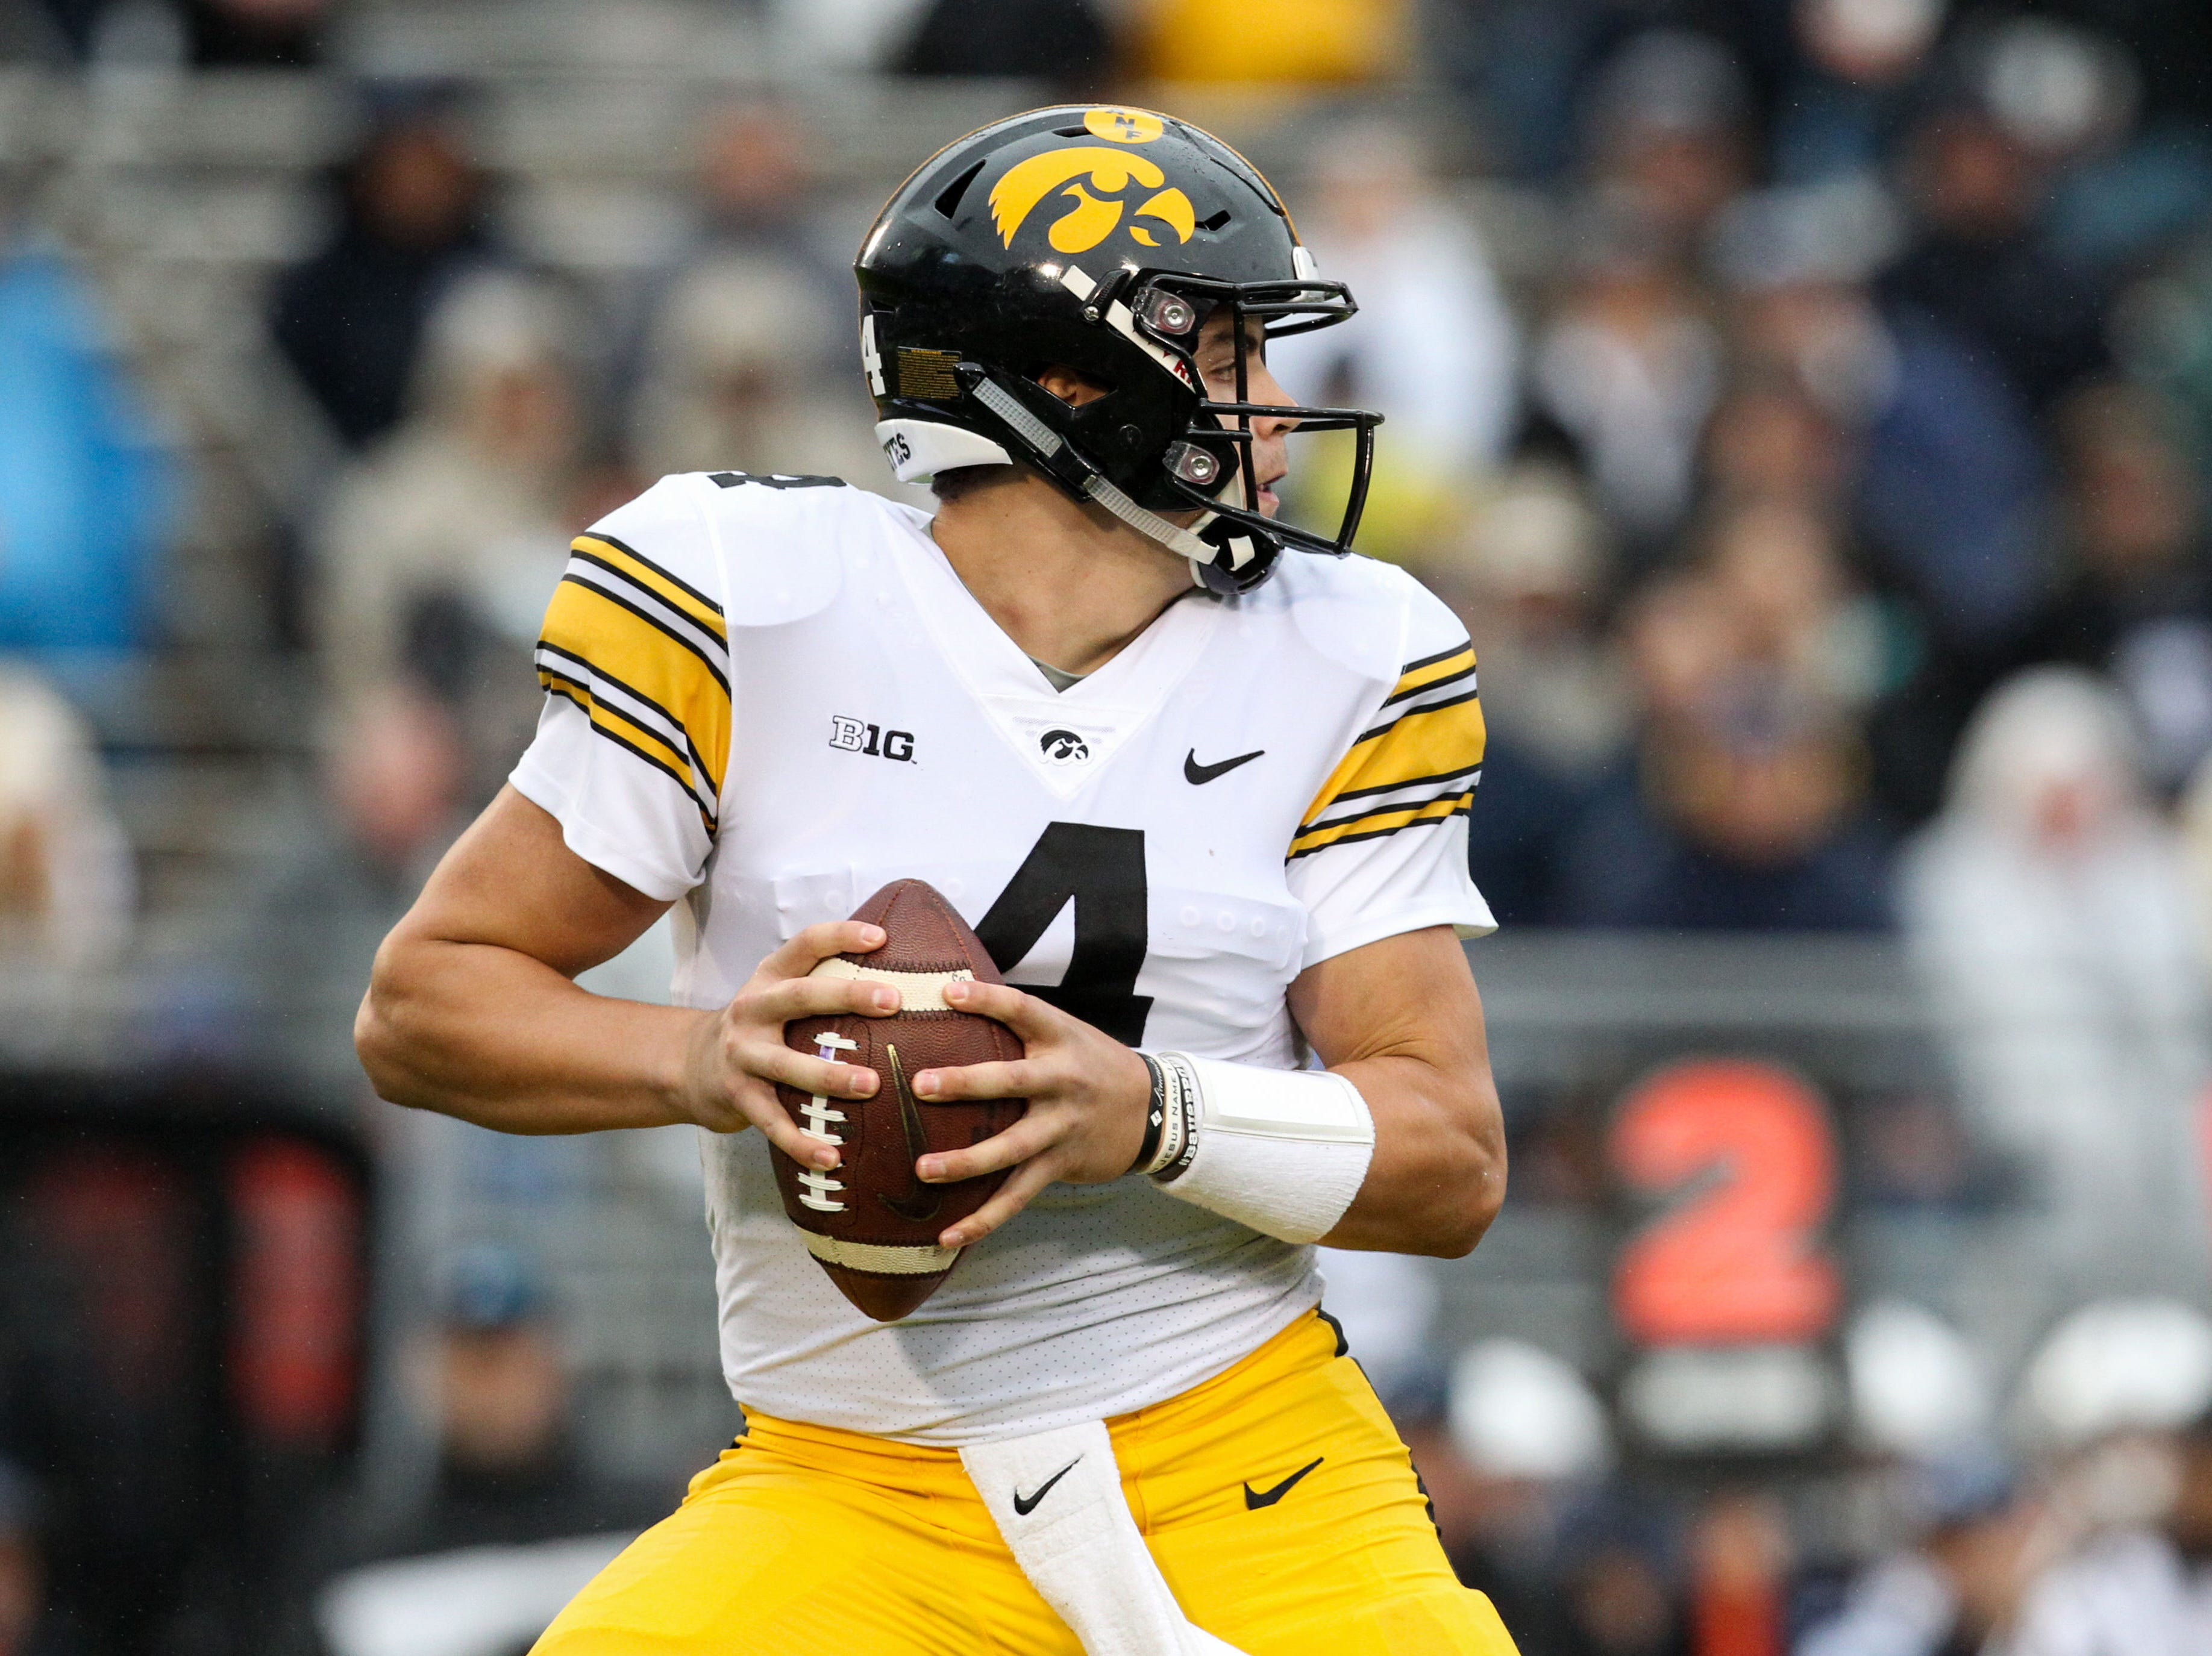 Hawkeyes quarterback Nate Stanley (4) drops back in the pocket during the second quarter against the Penn State Nittany Lions at Beaver Stadium.